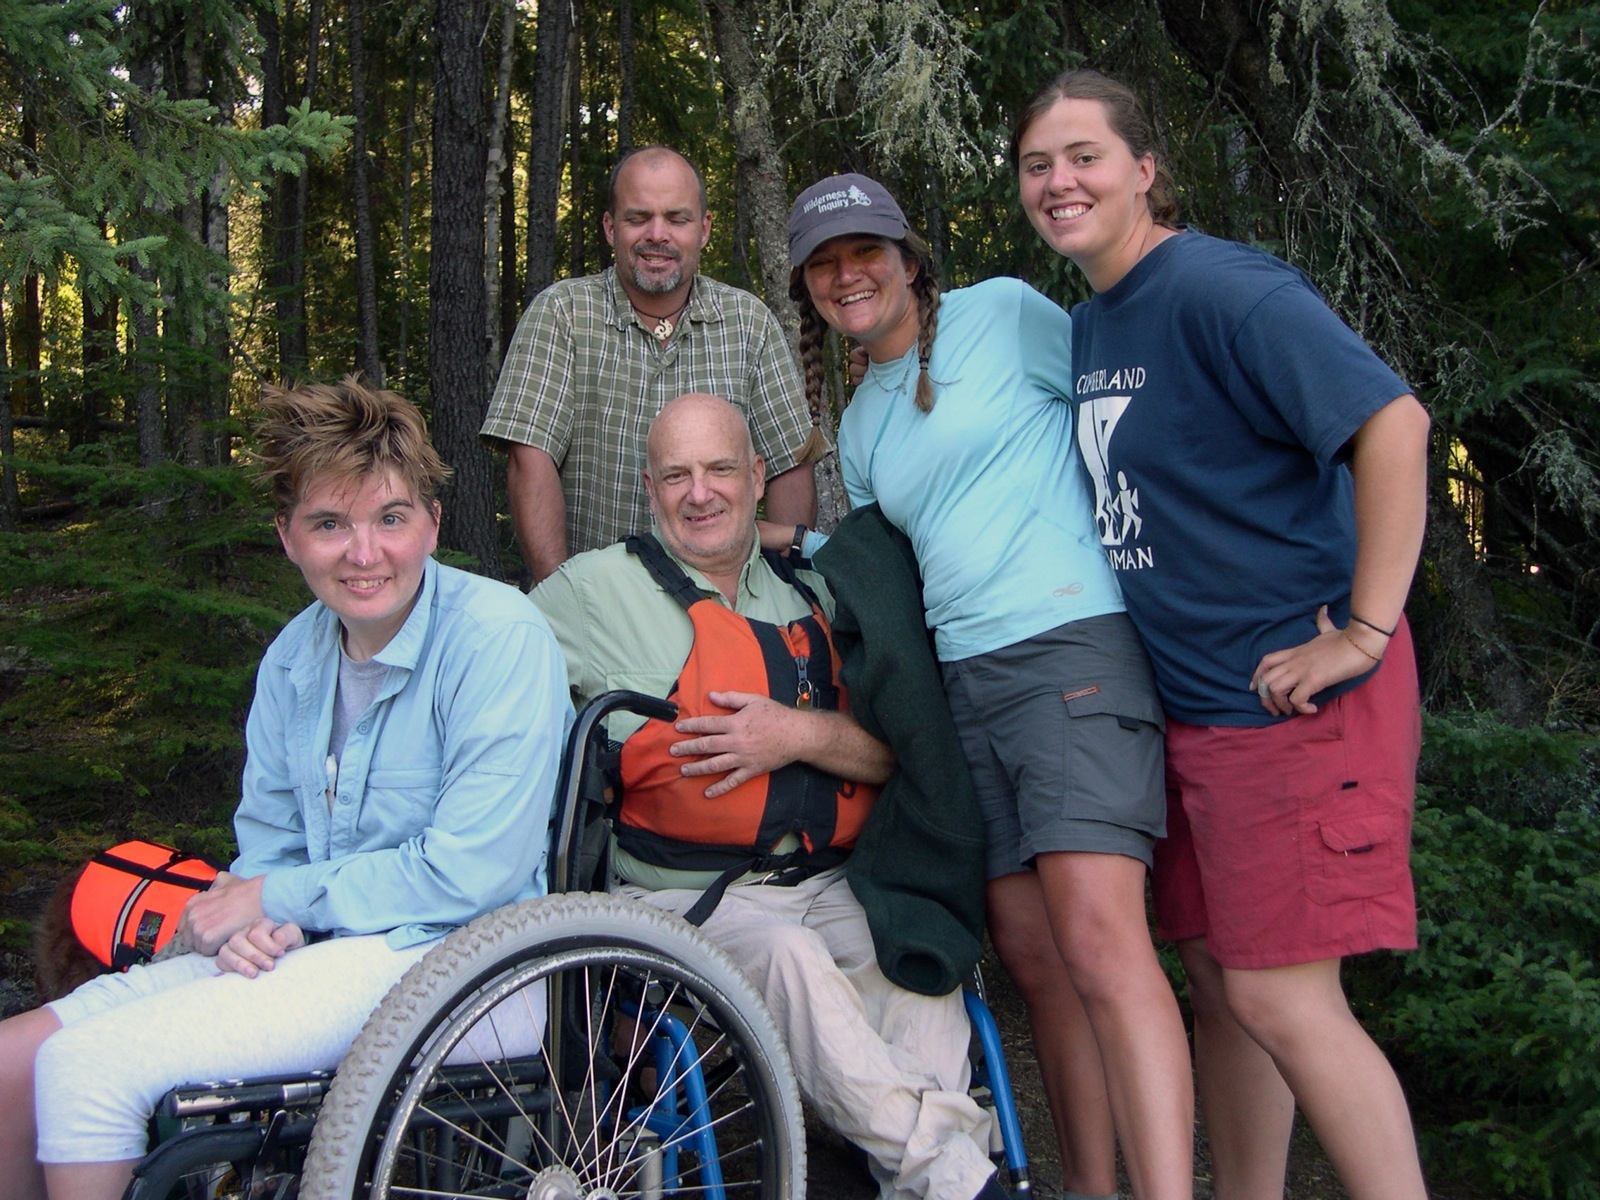 Five group members pose for a photo on the edge of the forest in the White Otter Wilderness.